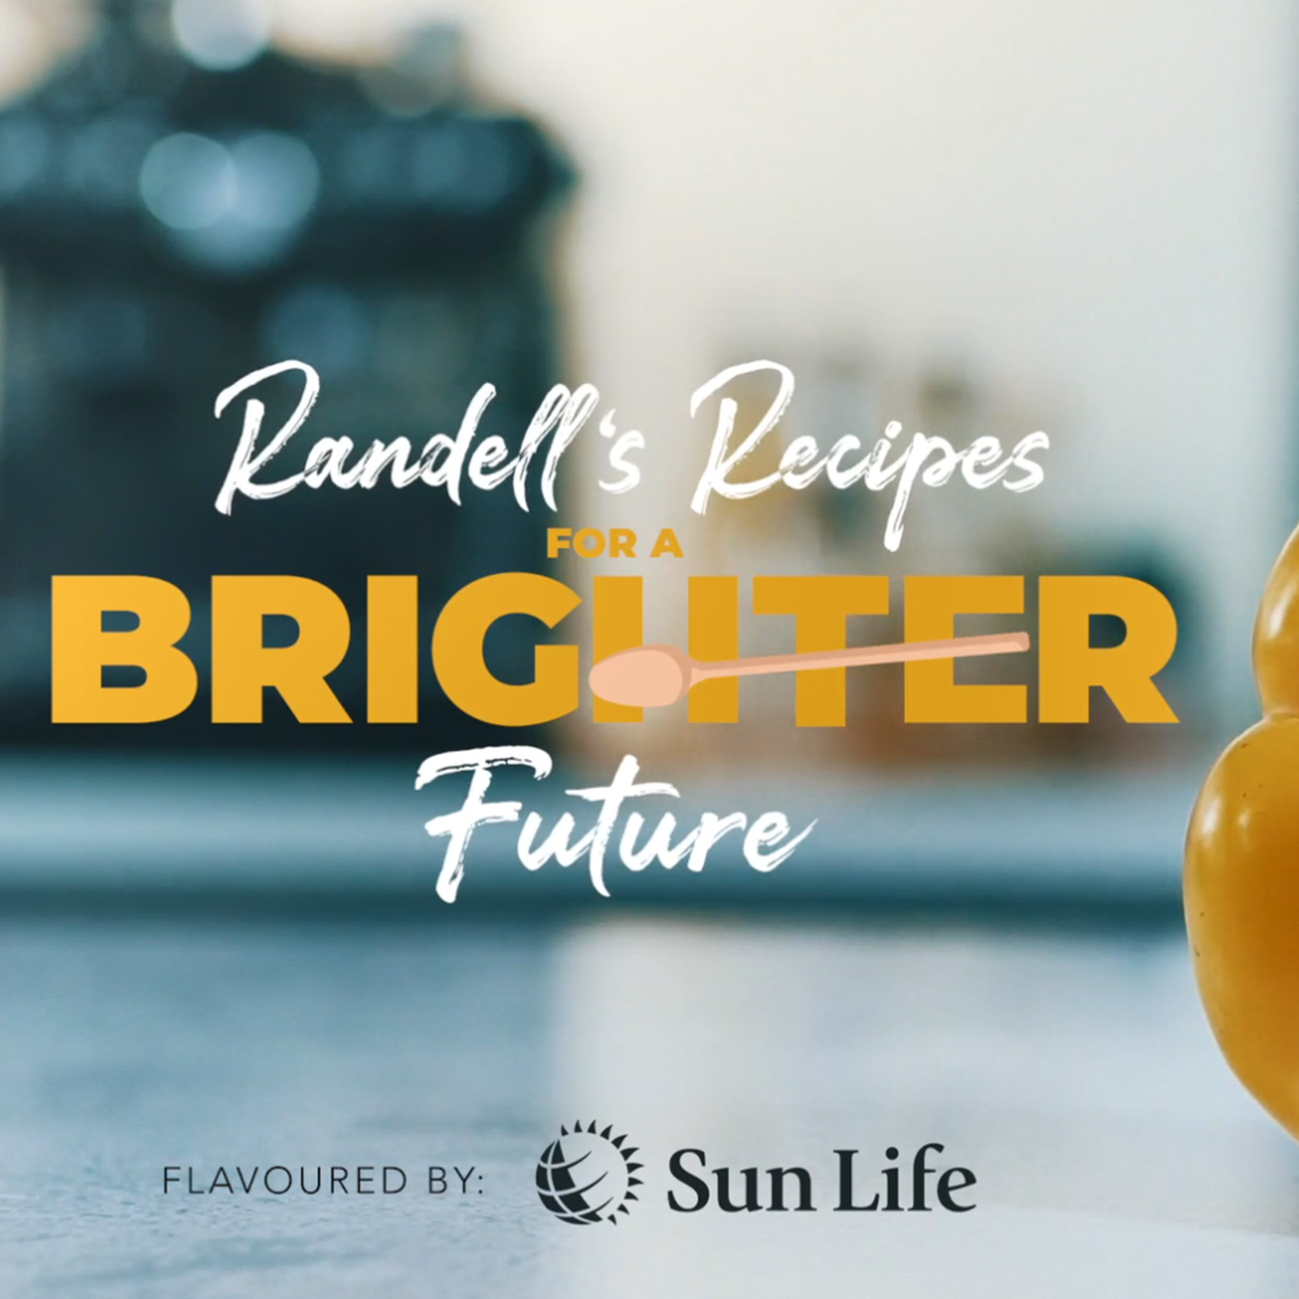 Randells Recipe for a Bright Future